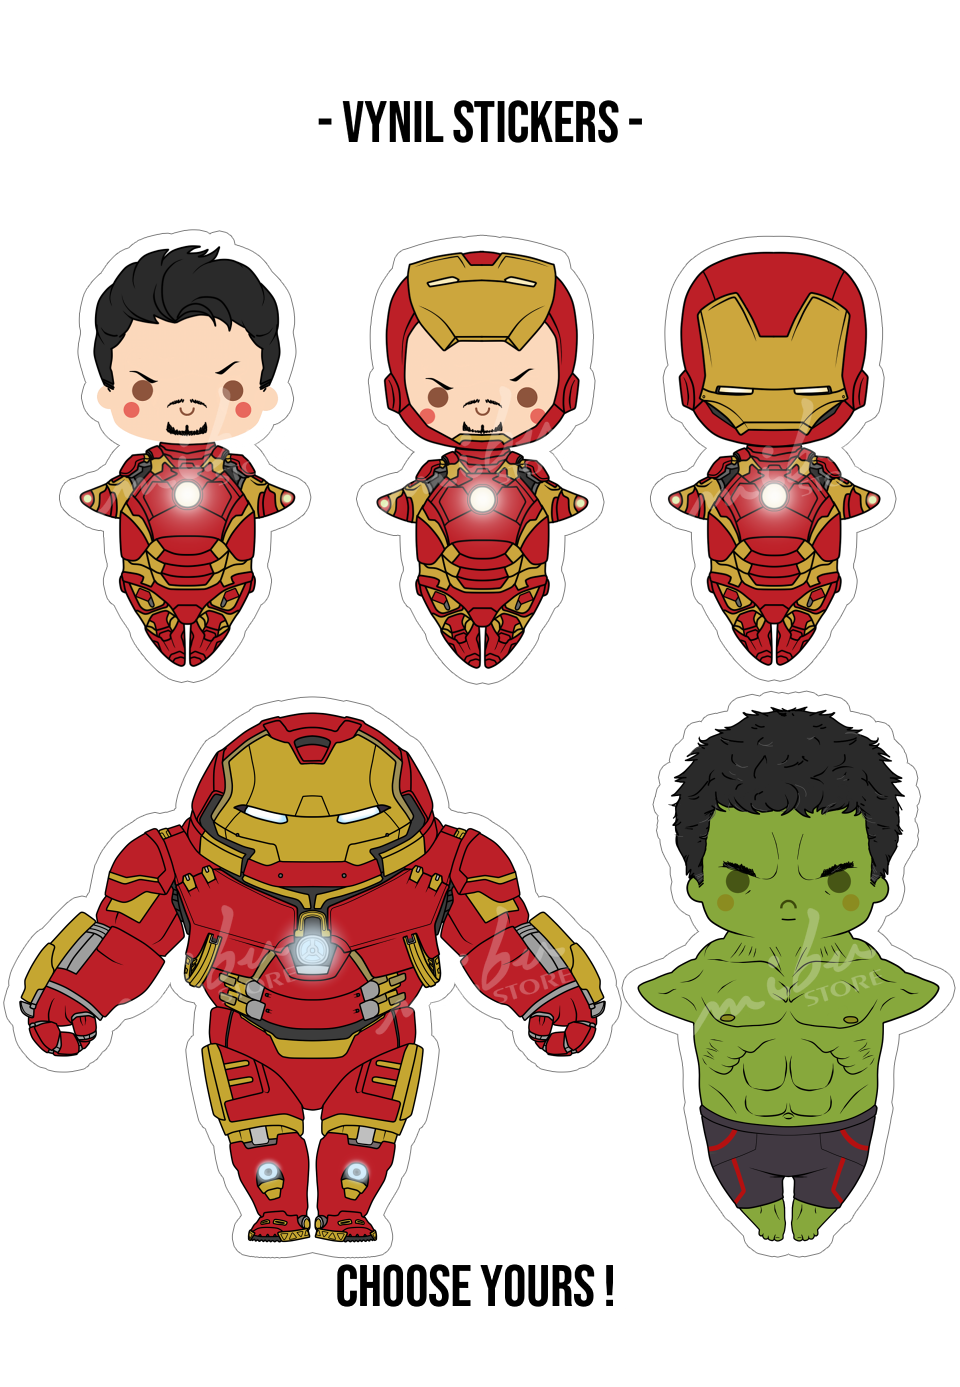 The avengers aou vinyl stickers